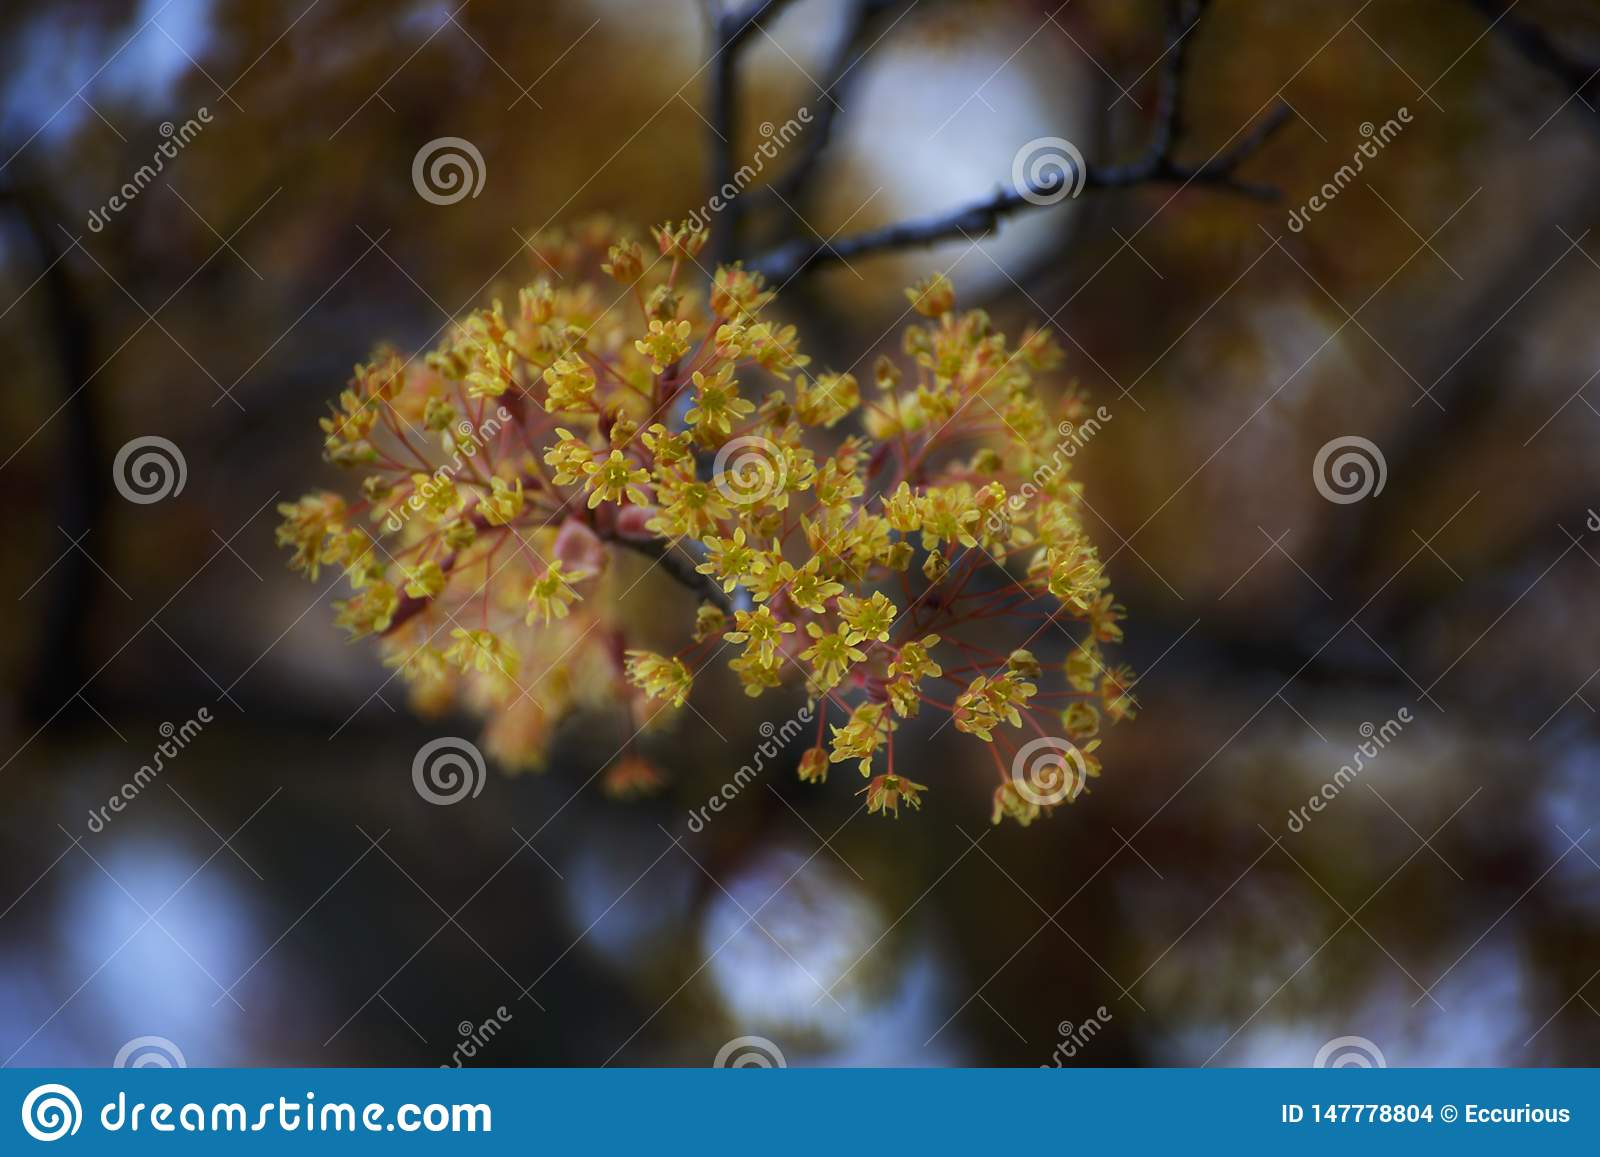 Bloom of a maple tree